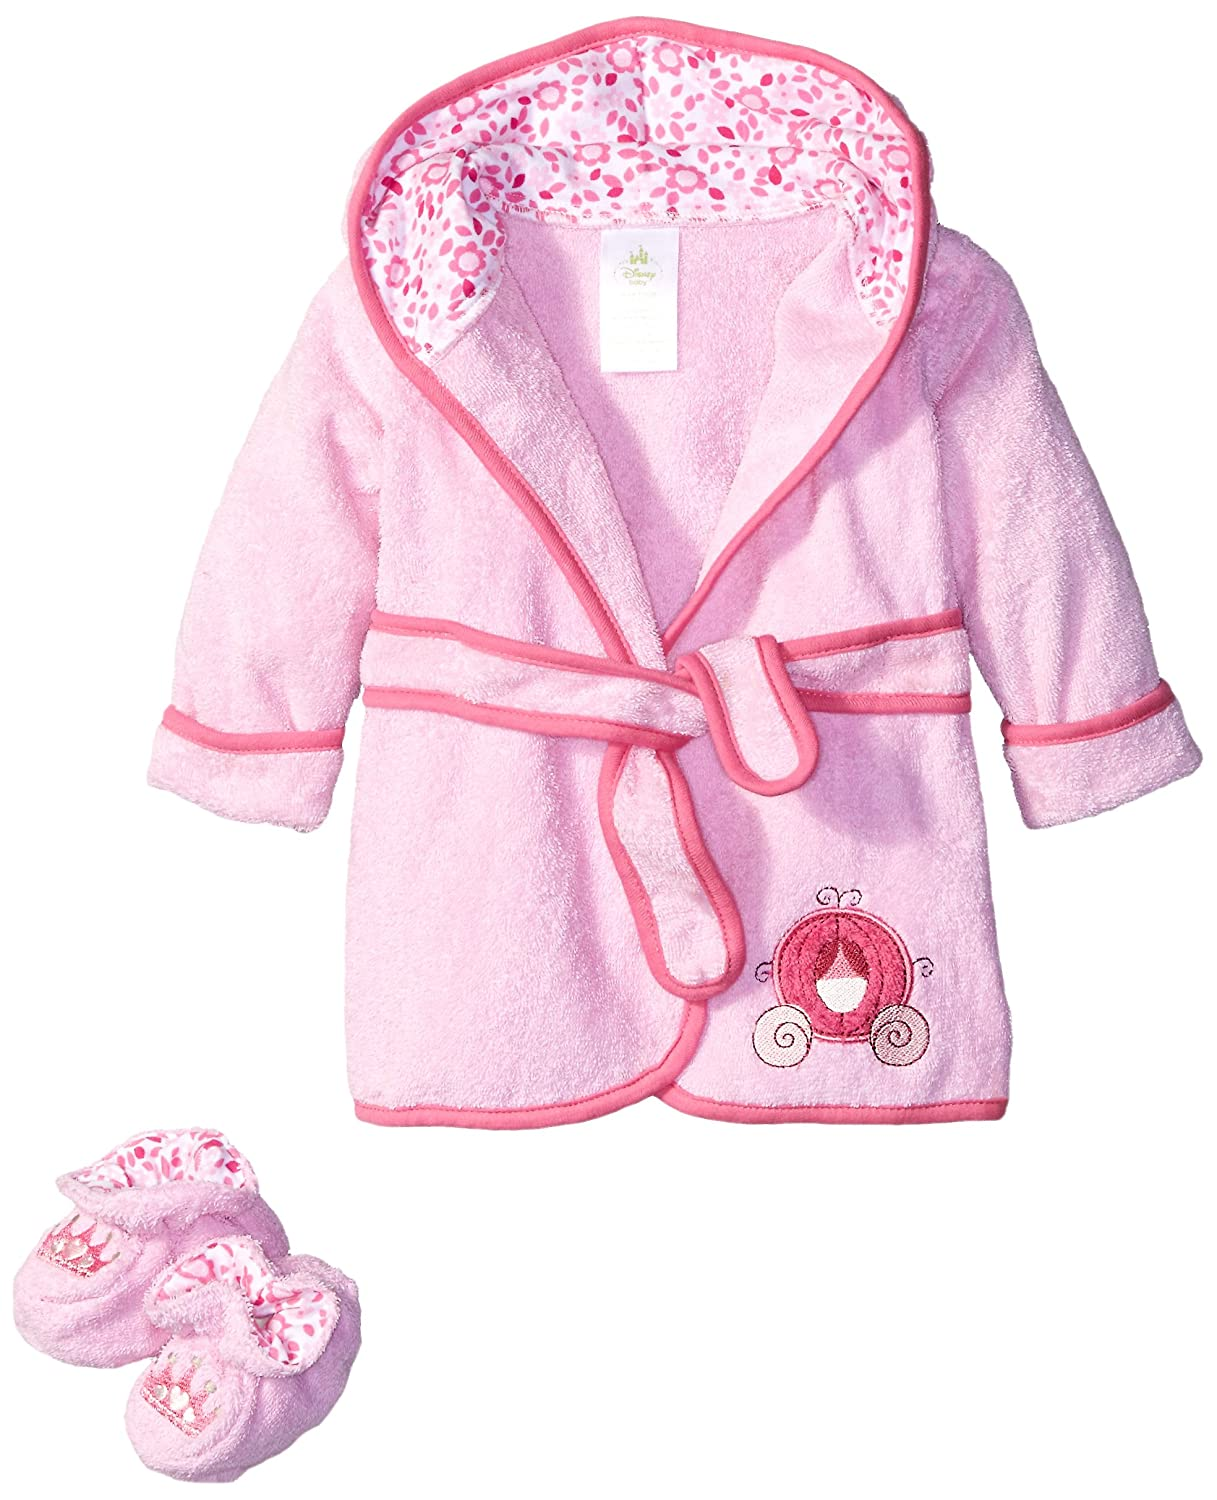 Disney terry bath robe pink baby princess baby jpg 1217x1500 Toddler terry  cloth robes 050813657